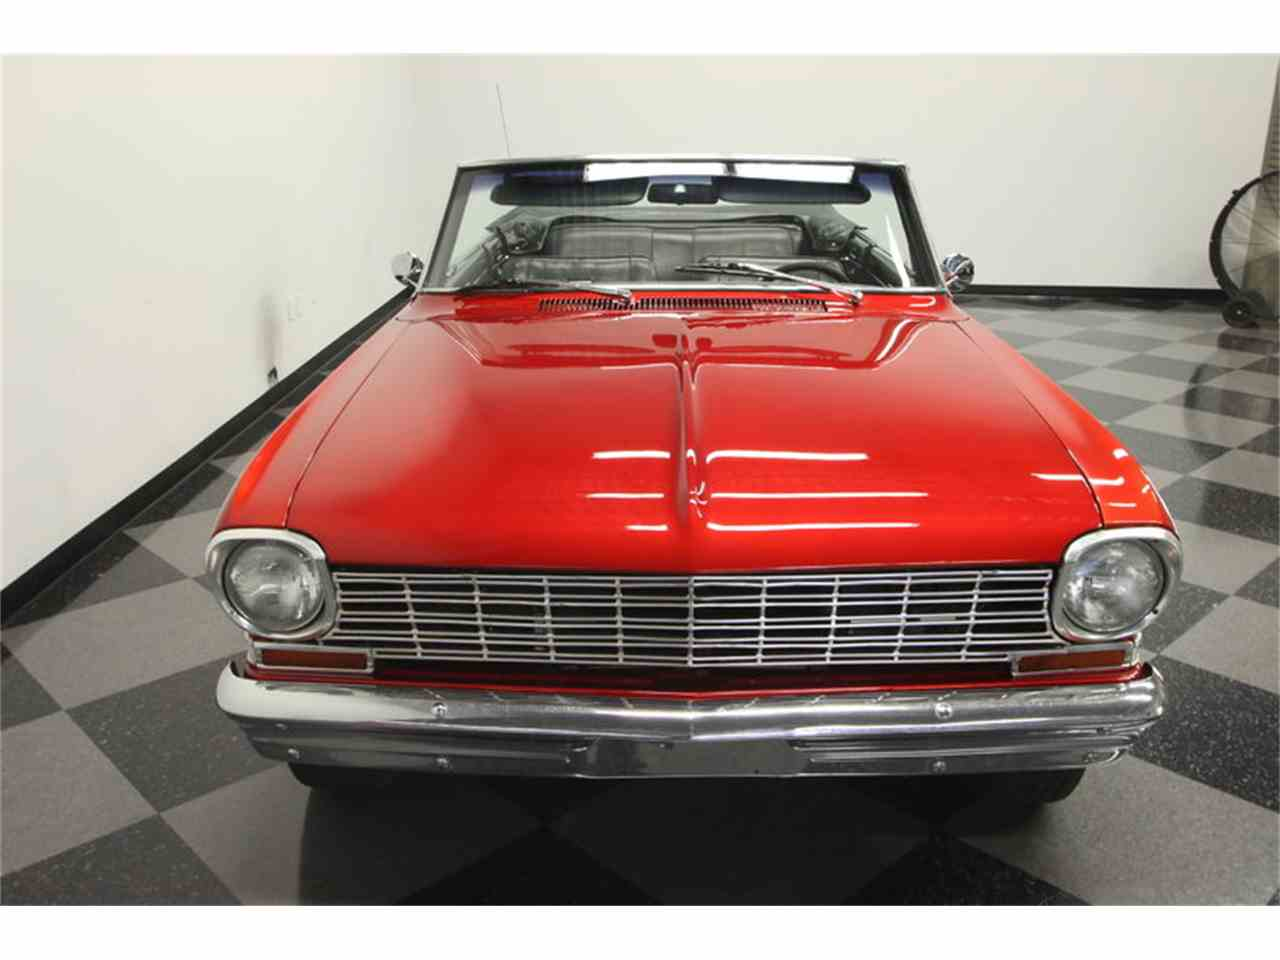 Chevy Dealers Tampa >> 1963 Chevrolet Nova Chevy II Convertible for Sale ...